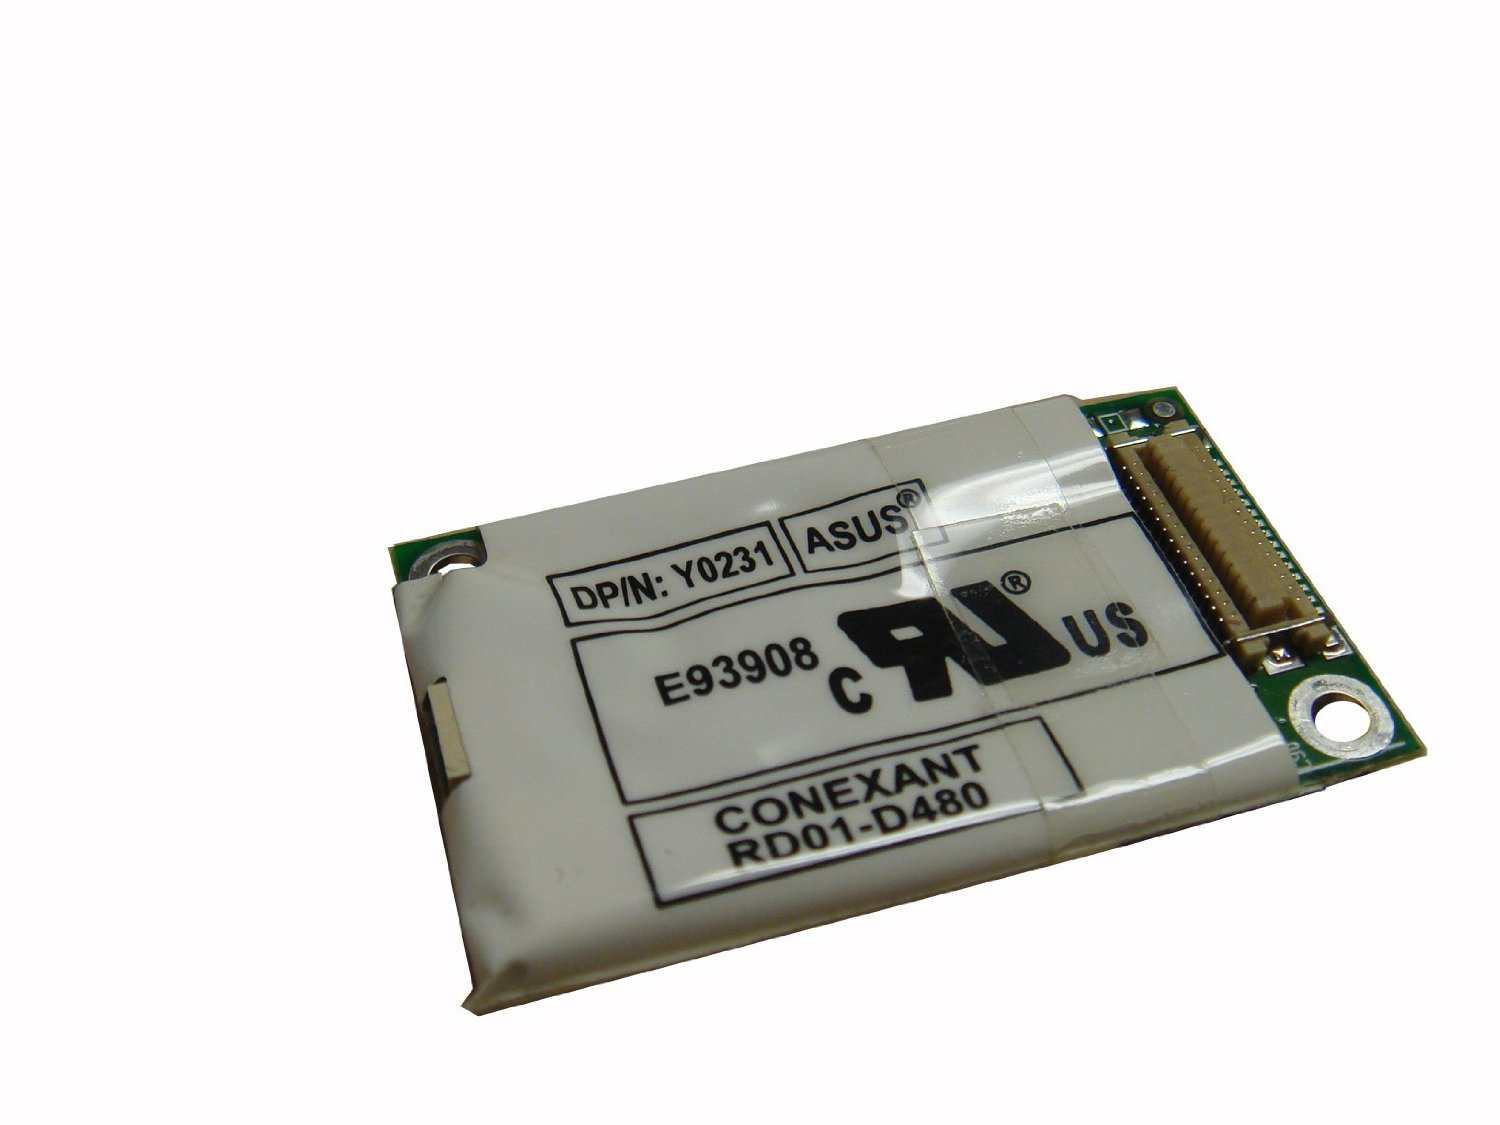 Dell Inspiron 2600 Conexant Modem Driver for Windows Download